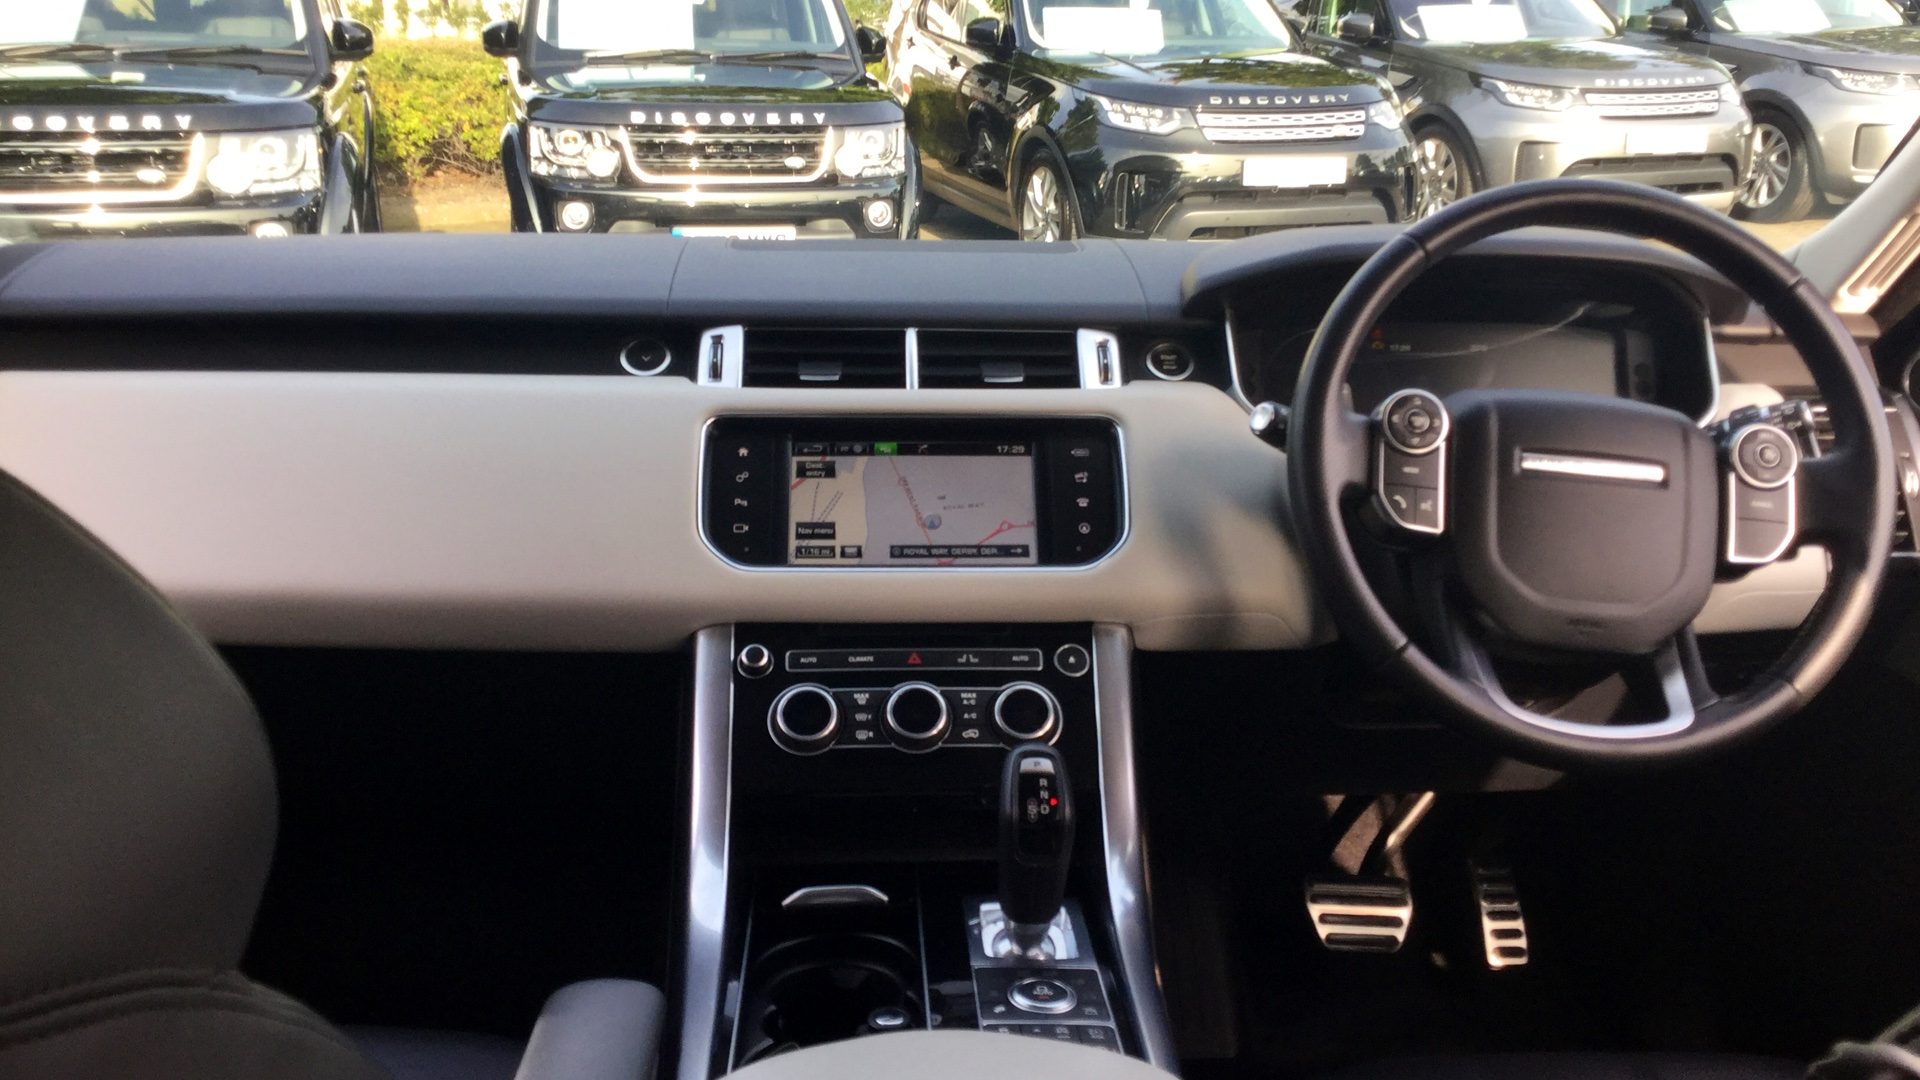 Used Land Rover Range Rover Sport HSE Dynamic SDV6 OW15LKD